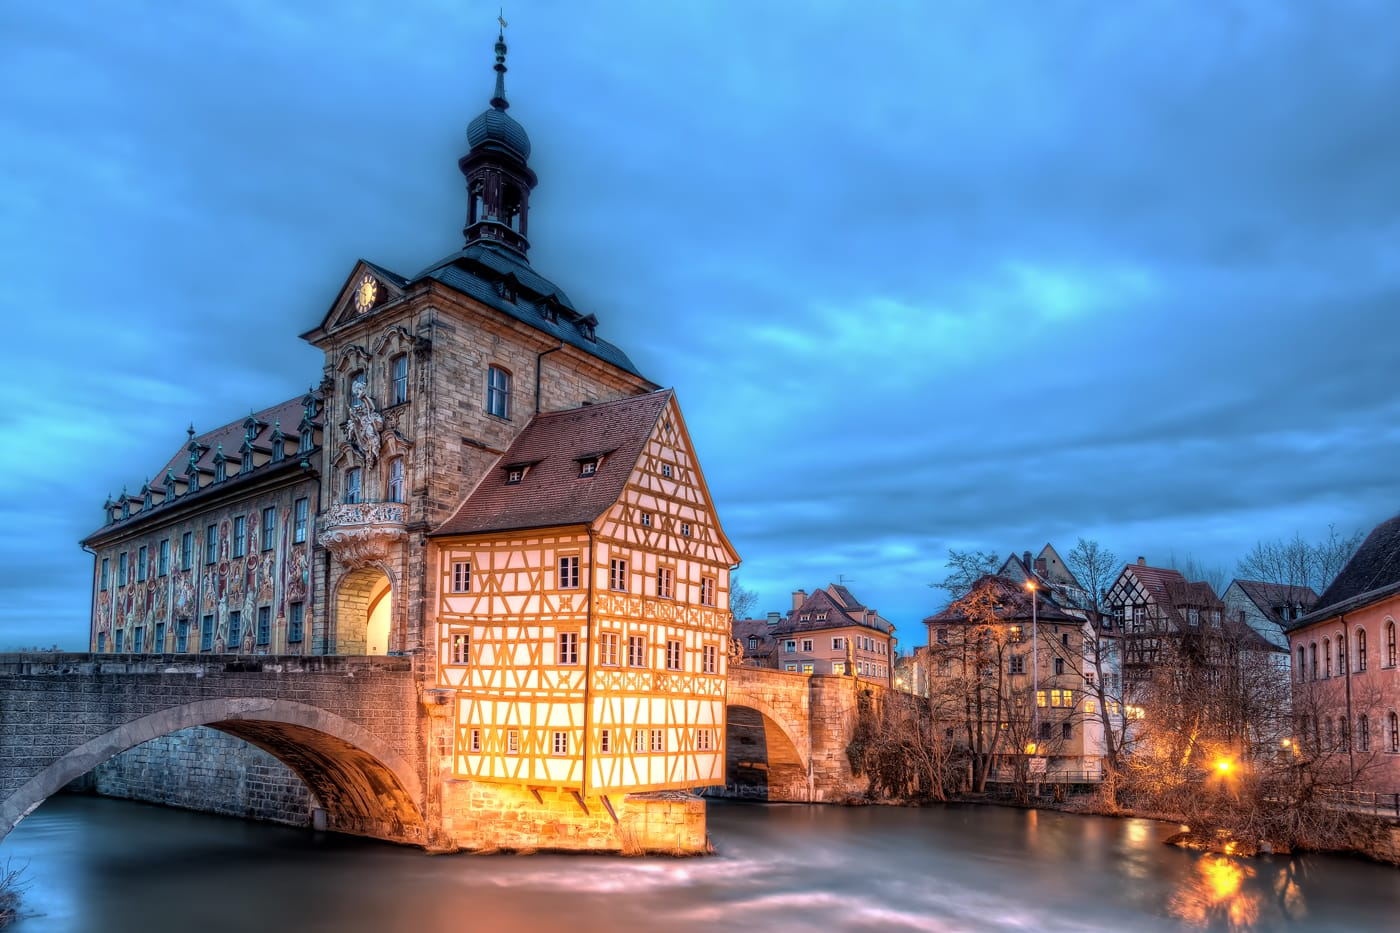 Old Town Hall Bamberg Germany Sumfinity